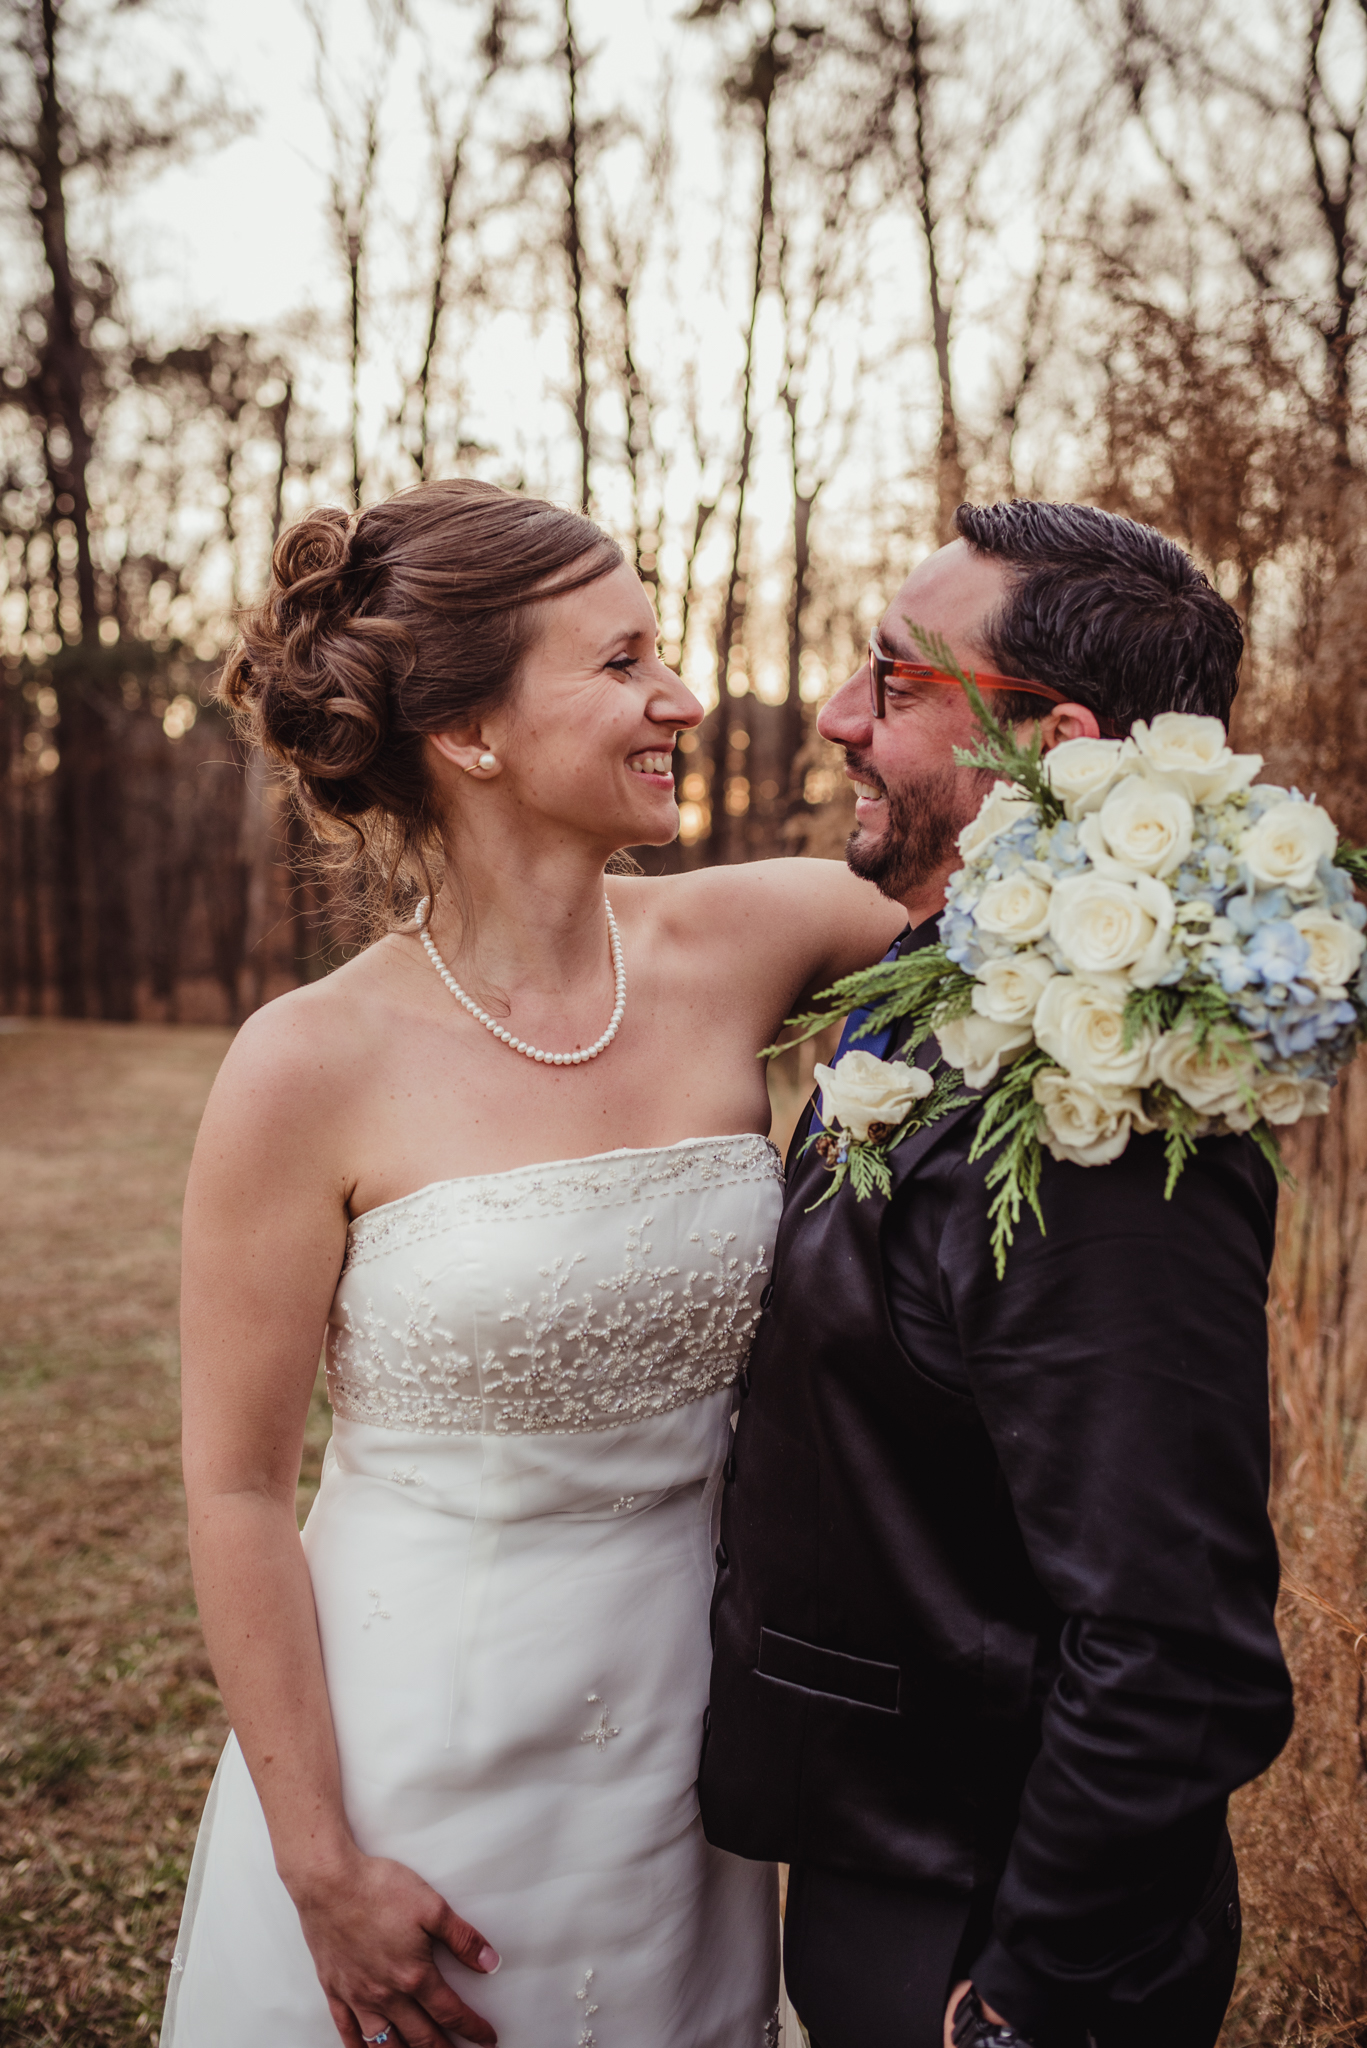 the-bride-and-groom-look-at-eachother-during-pictures-at-a-local-park-in-raleigh.jpg